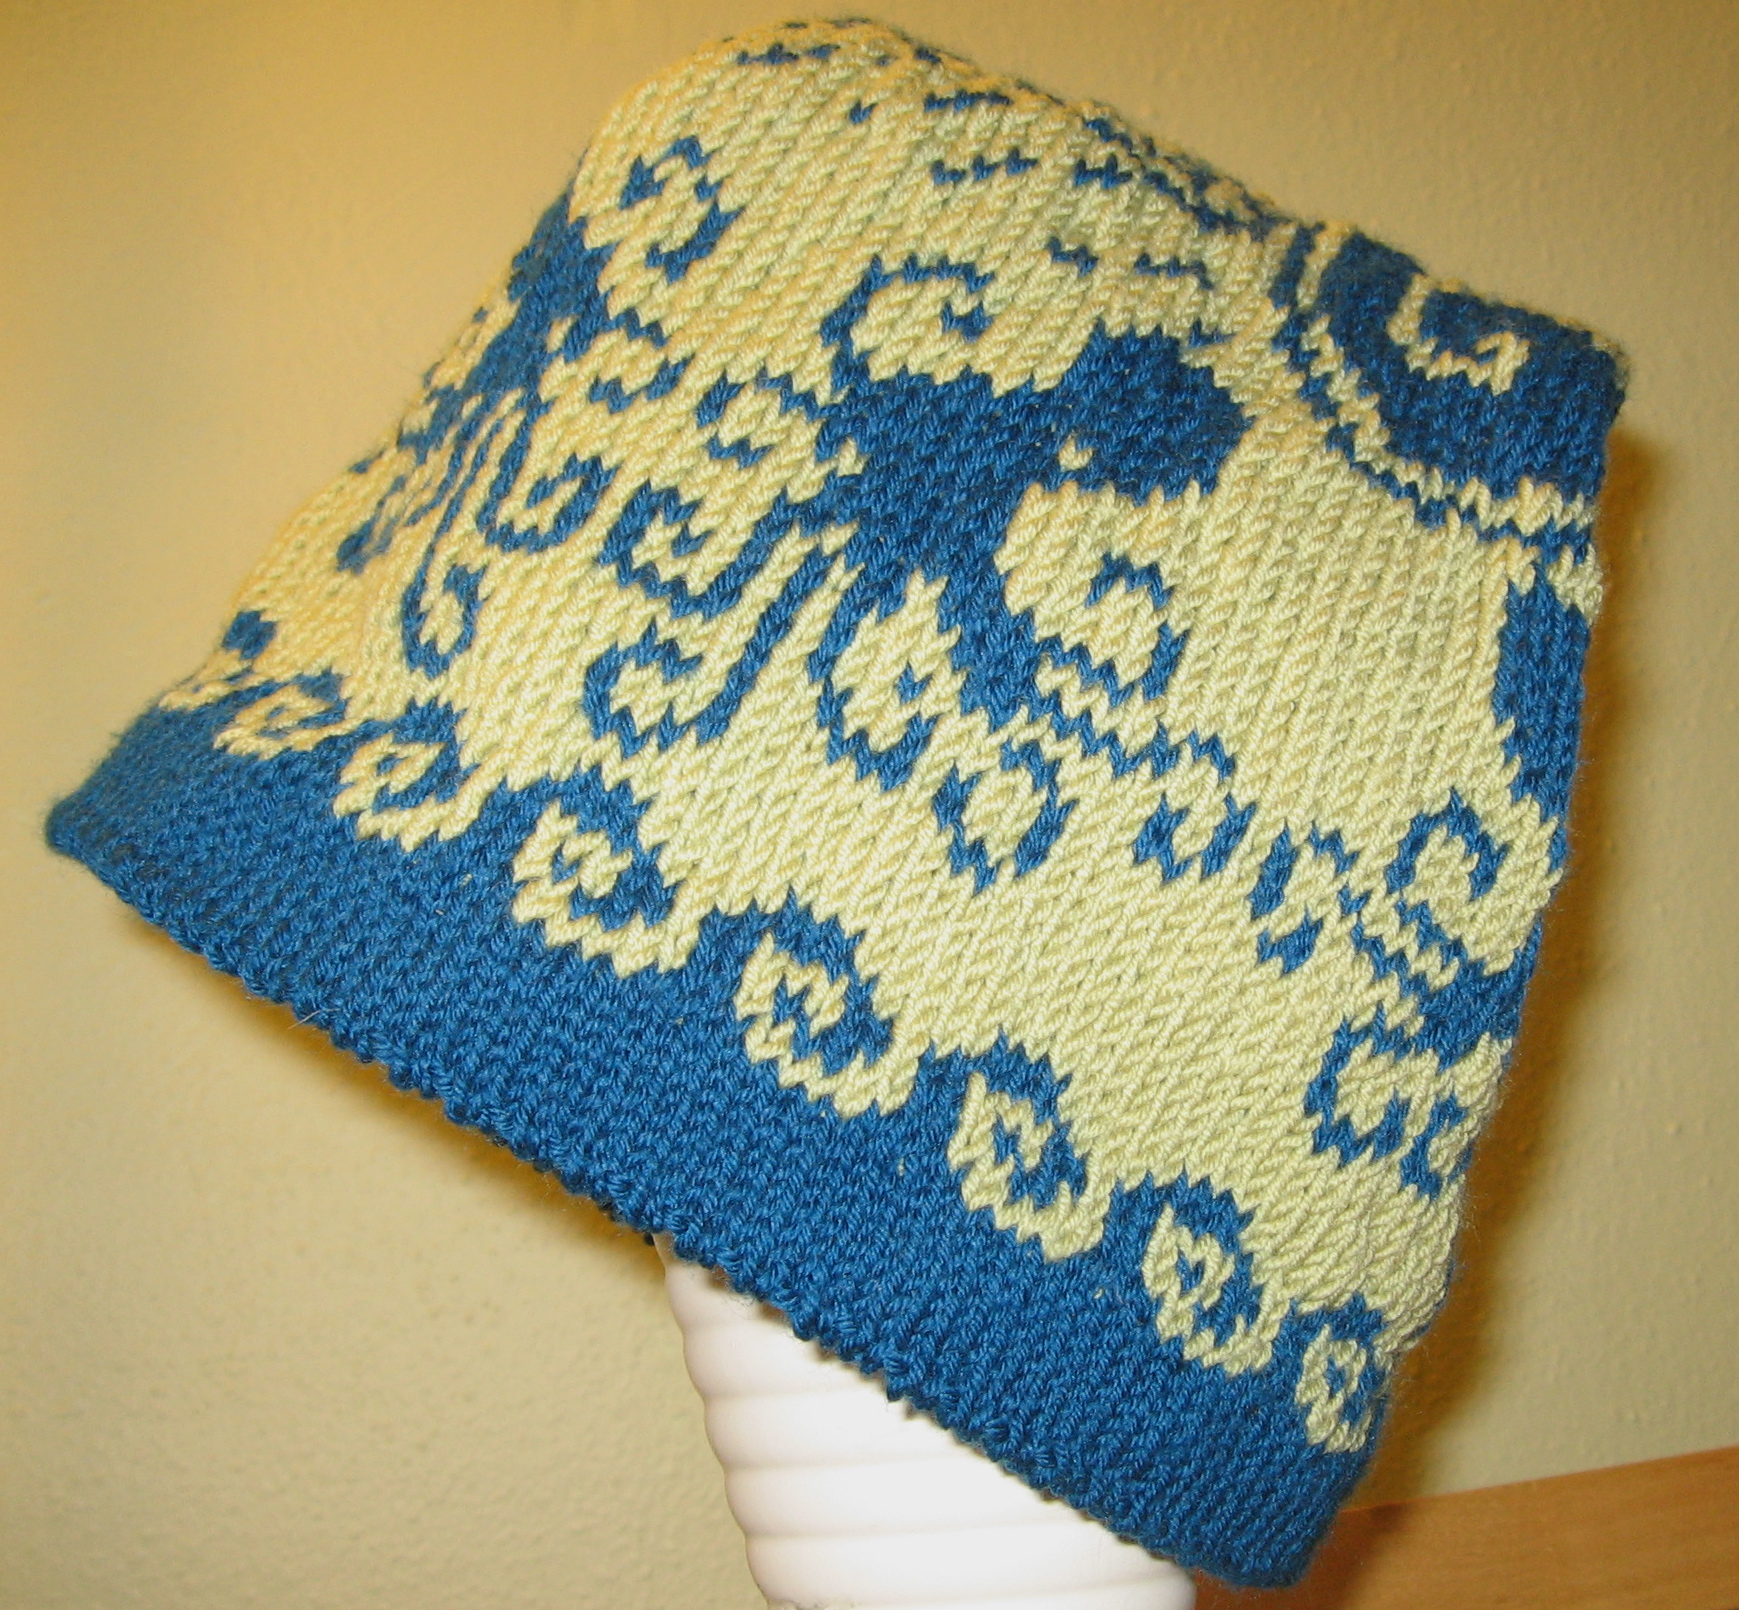 Knitting Pattern Octopus Hat : Decrease-free Octopus Hat Waiting for the rains?